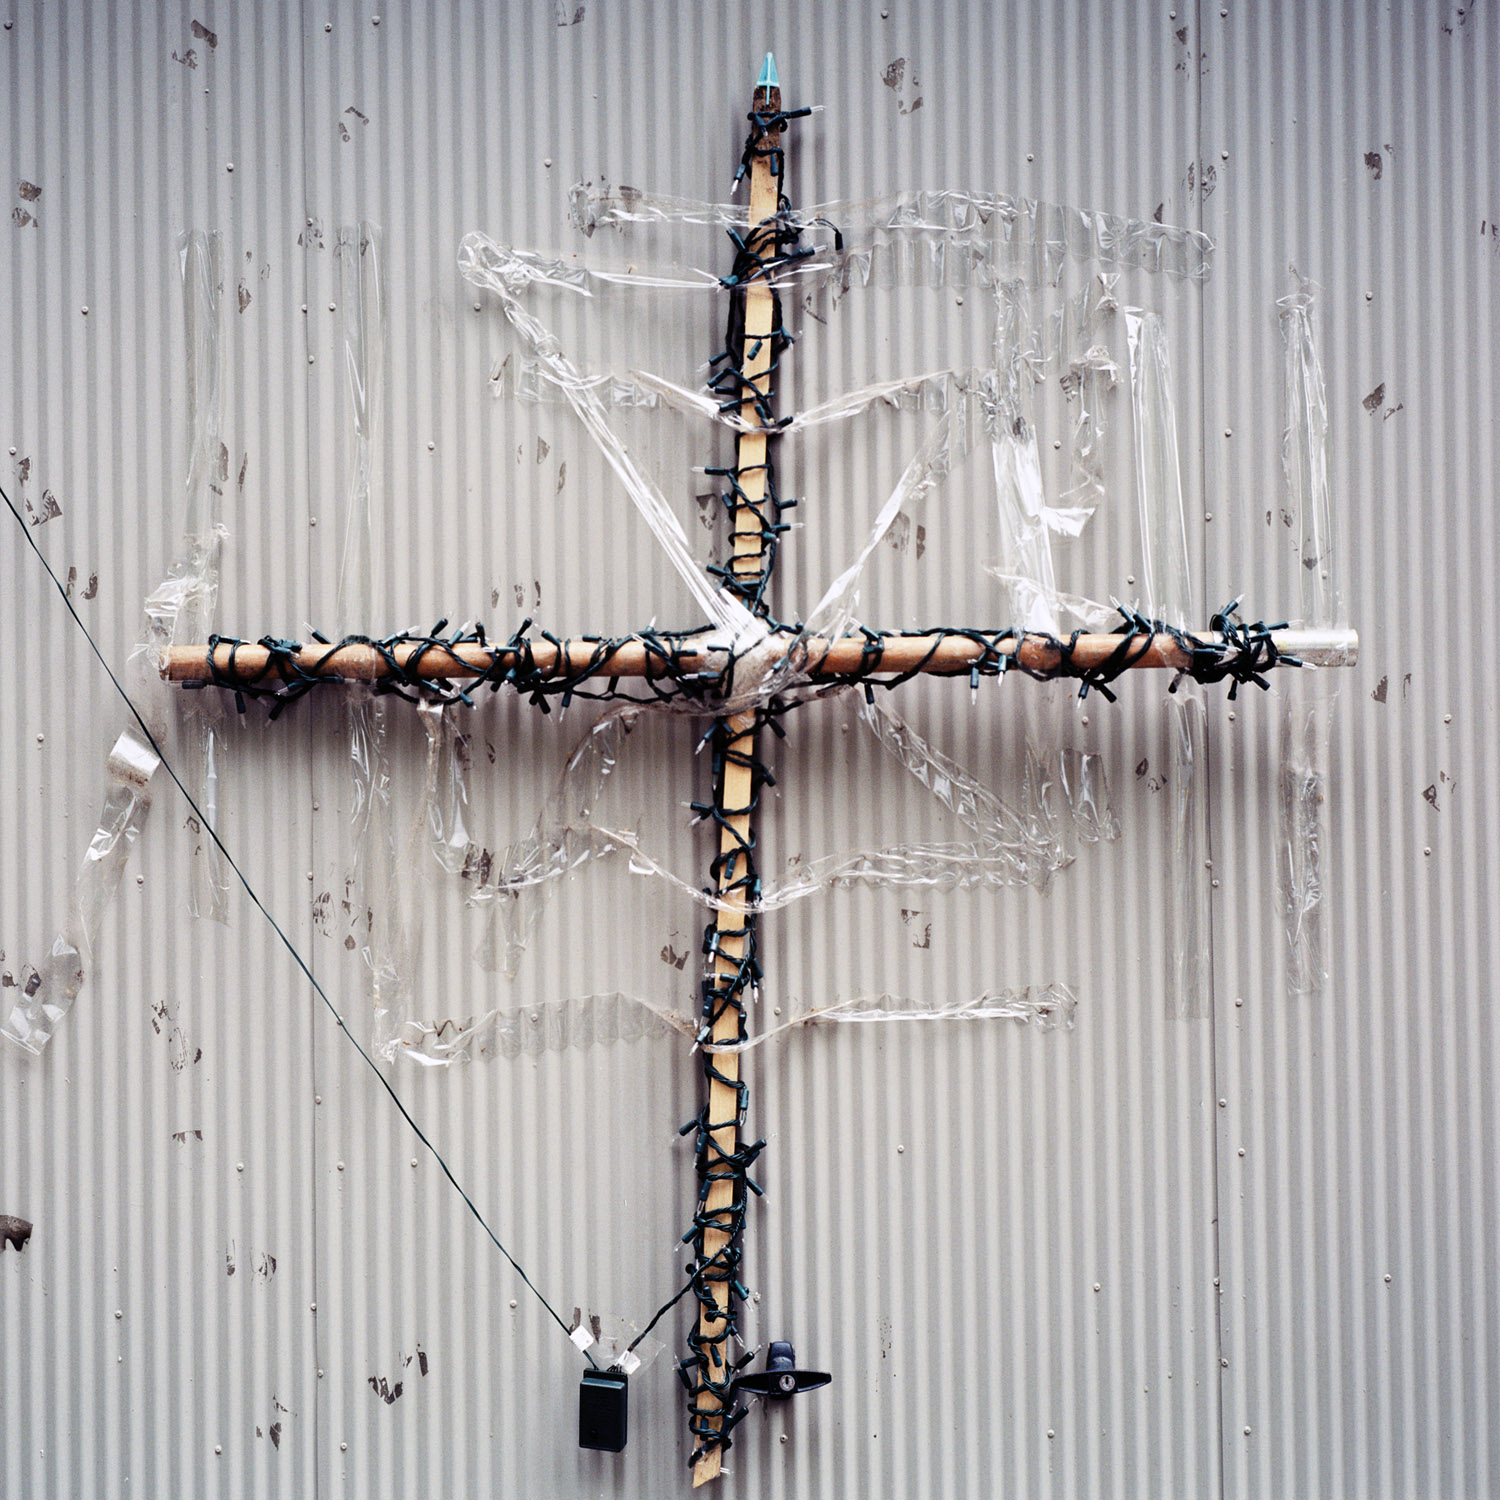 Selotaped Cross, 2006, From The Series Touchstones By Abby Storey.